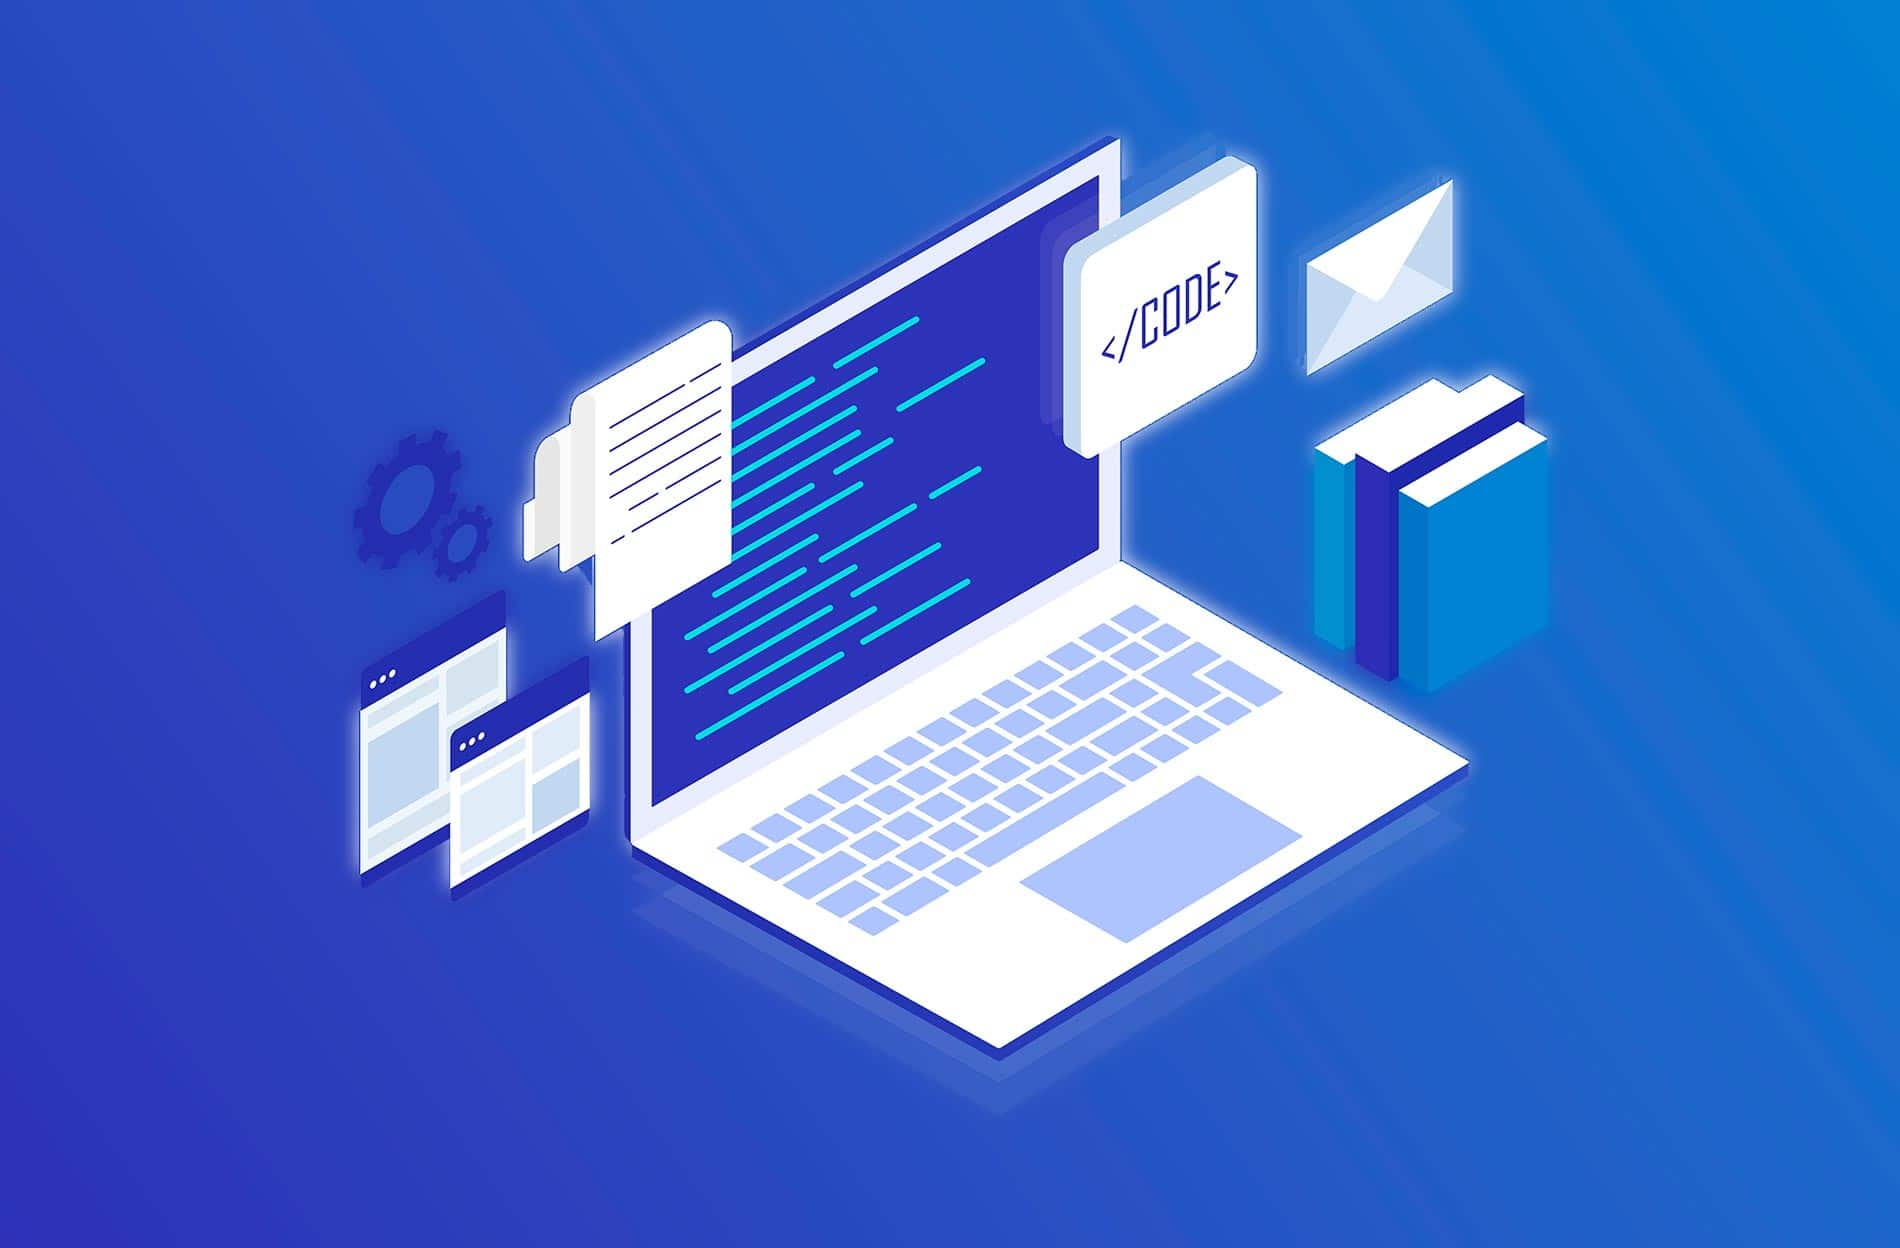 Low-code business applications